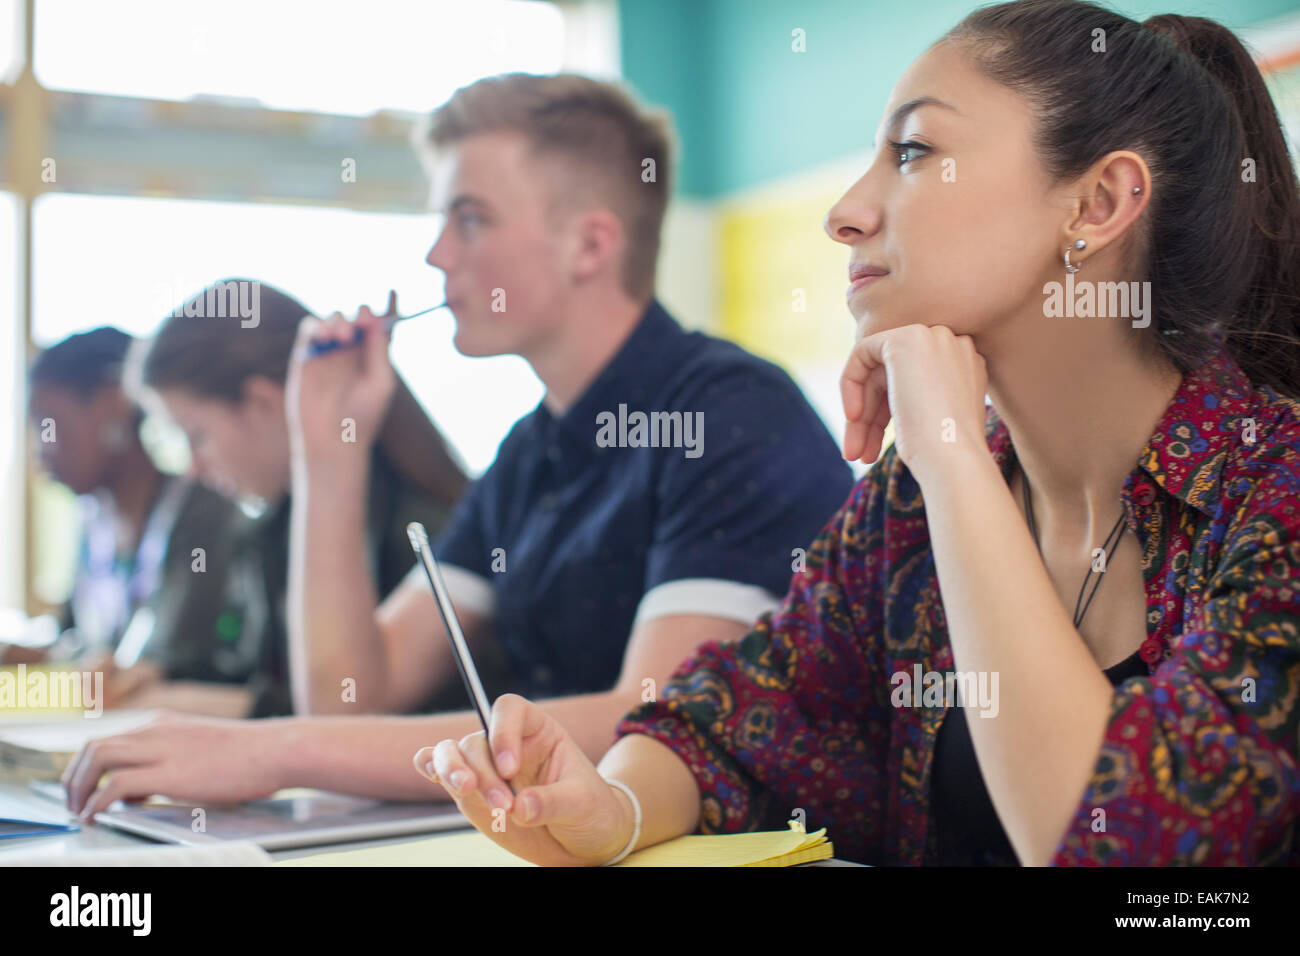 Female student contemplating in classroom - Stock Image